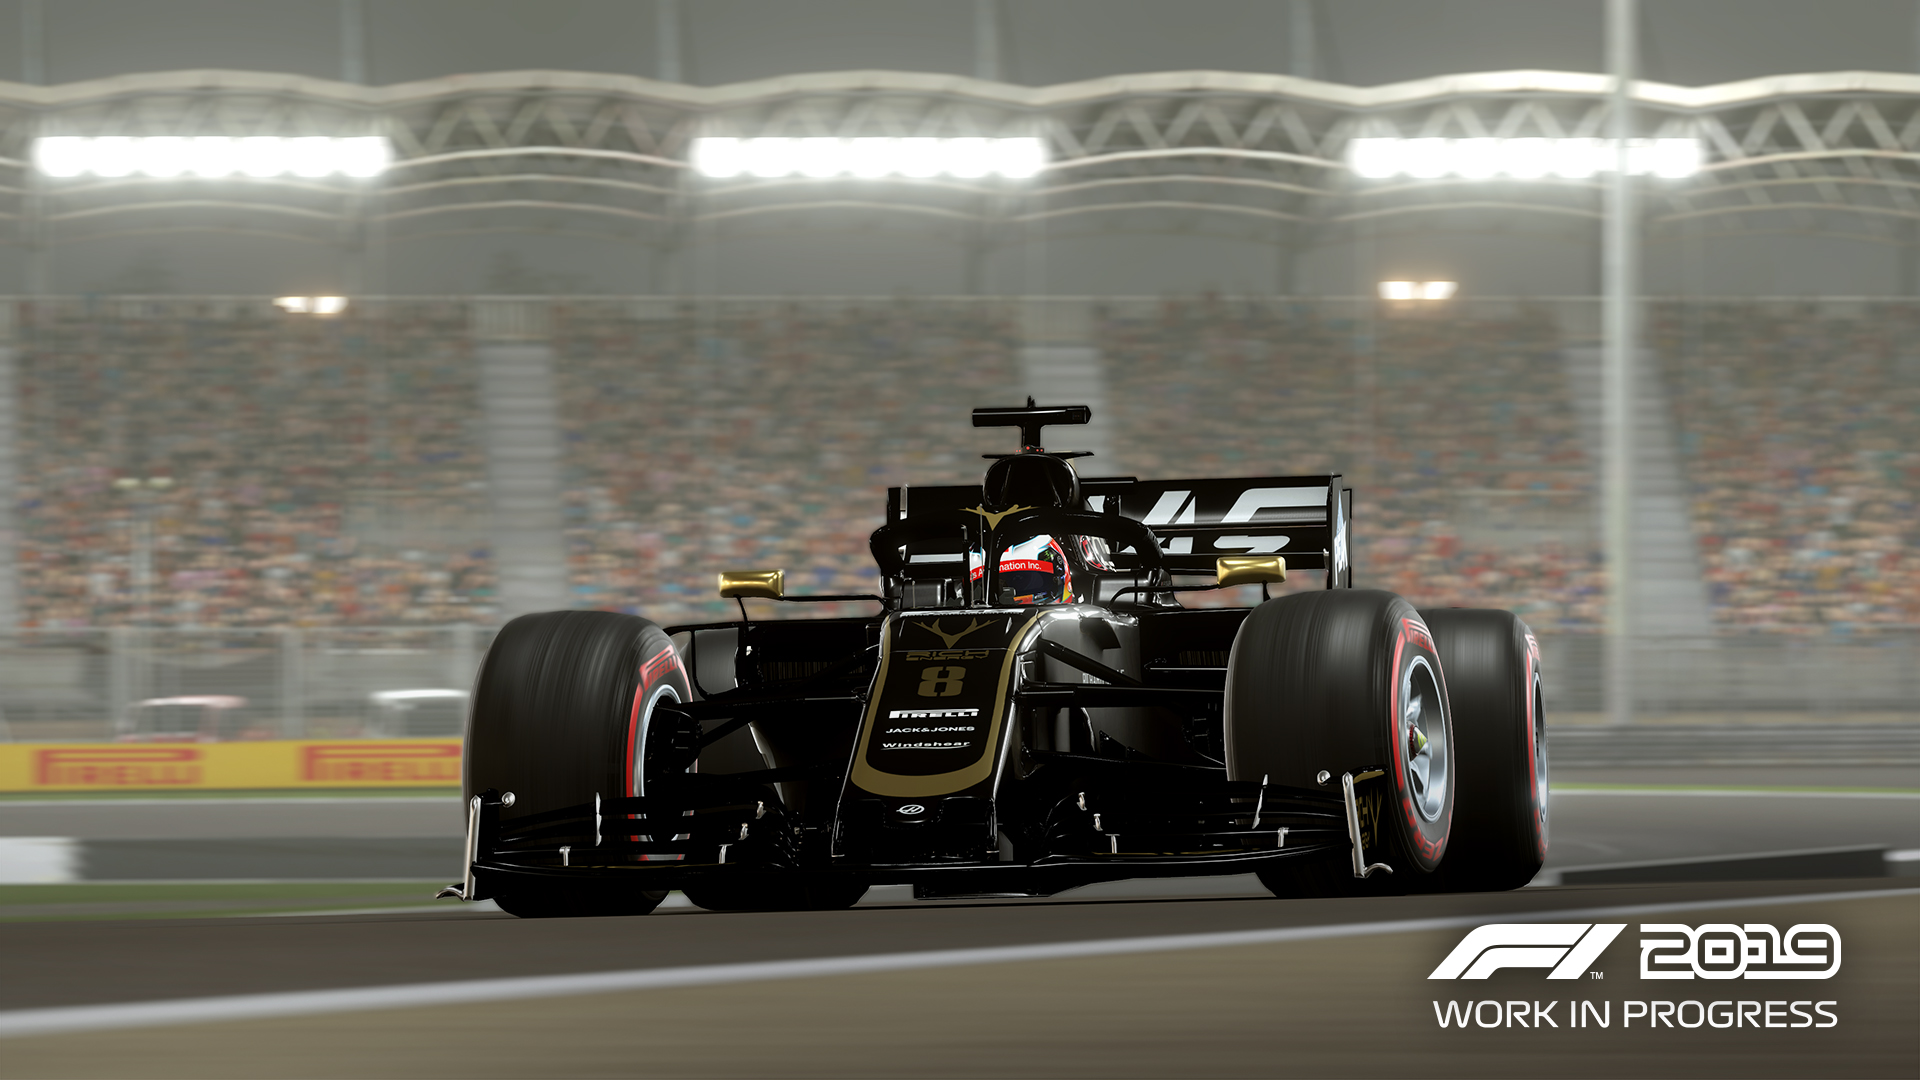 Check out the latest F1 2019 images including boxart - Team VVV